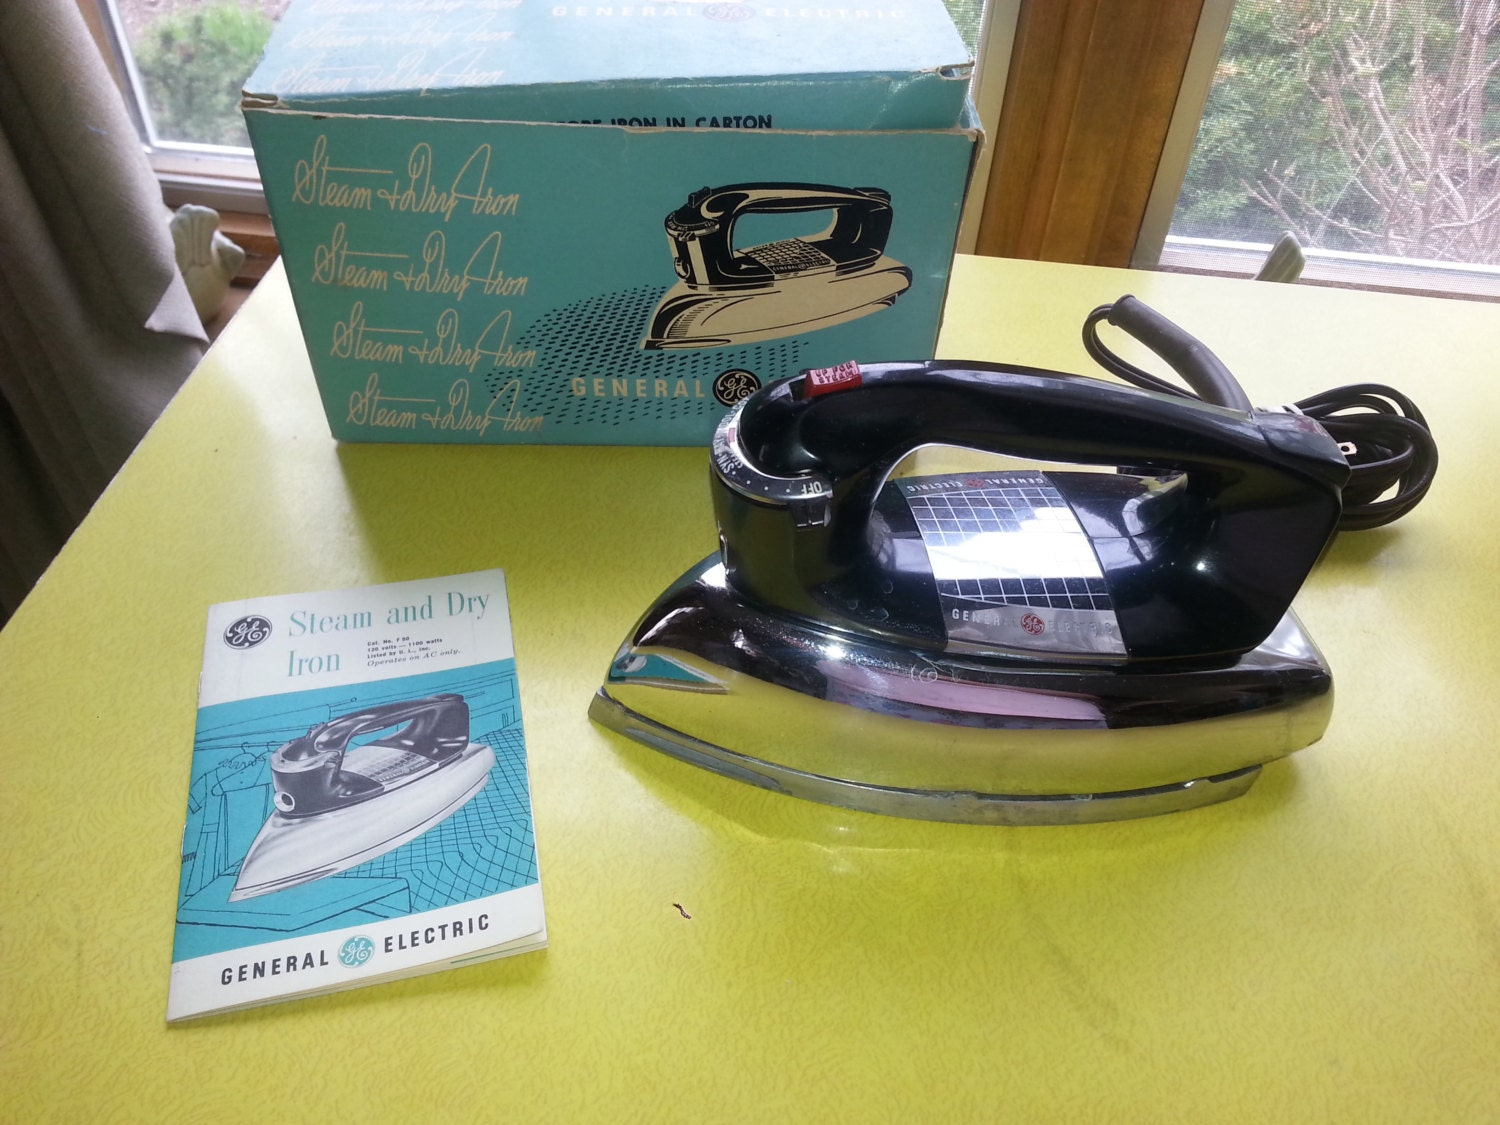 Electric Dry Iron ~ Vintage general electric steam and dry iron by